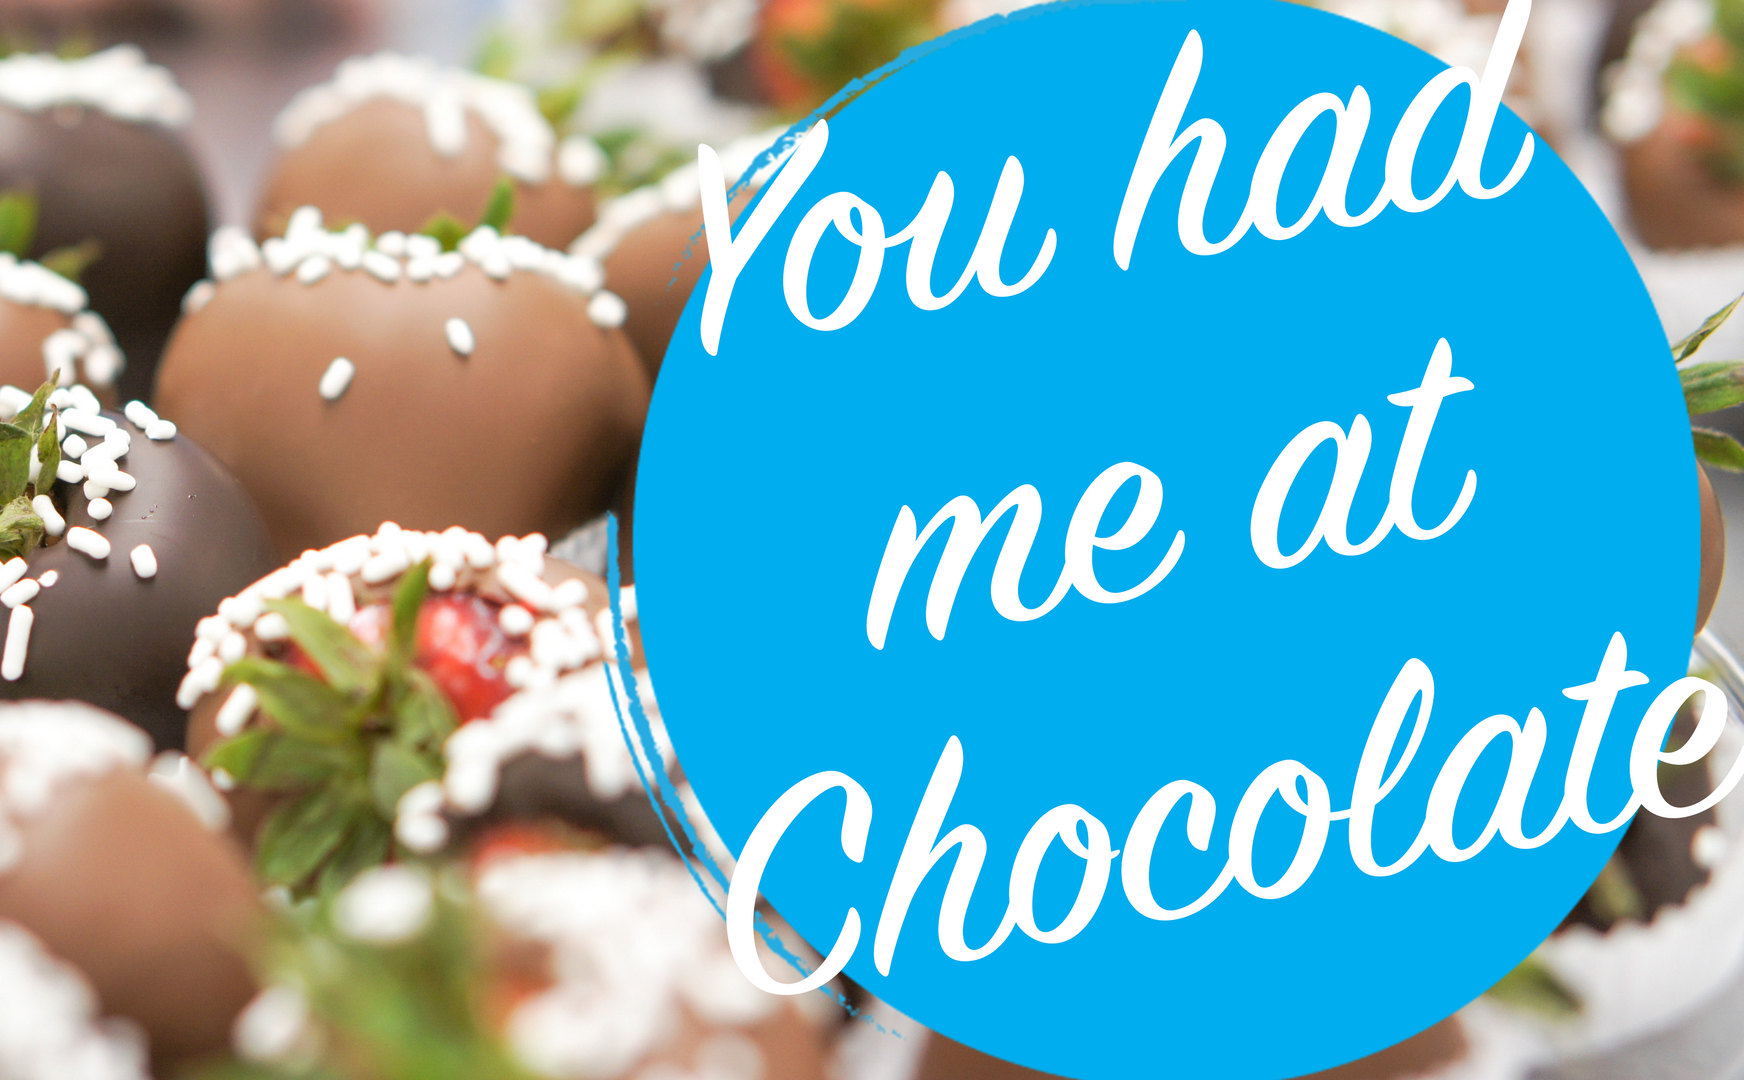 You had me at chocolate